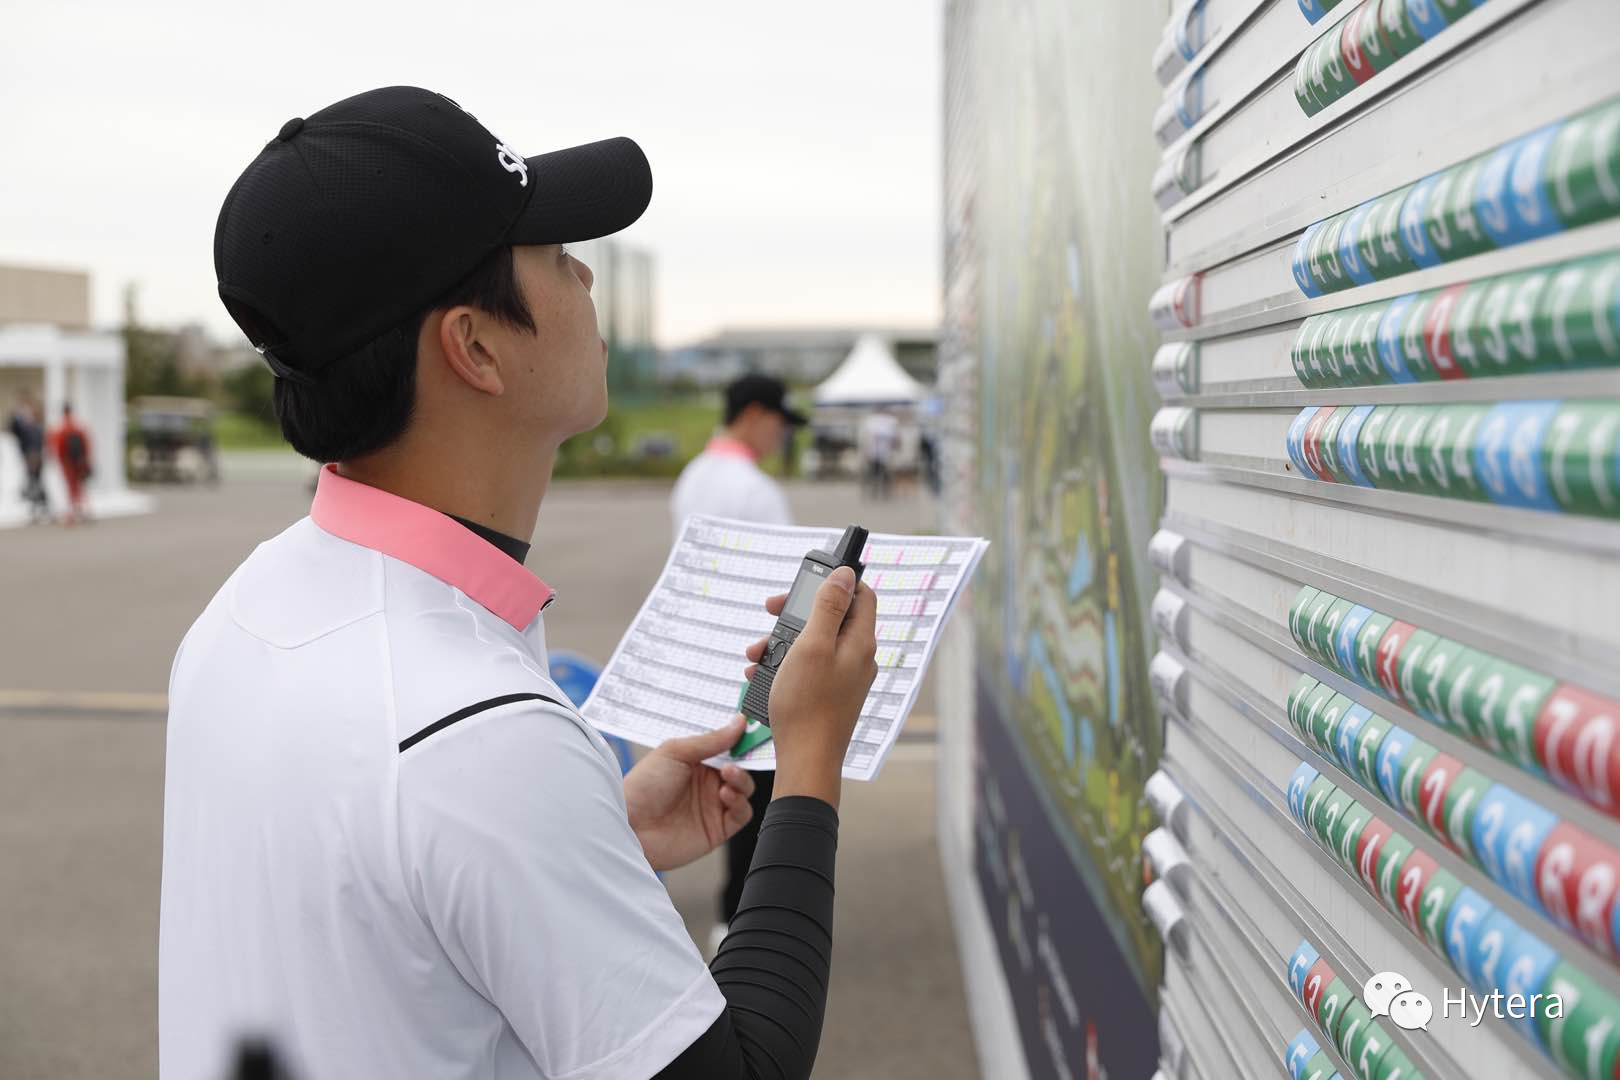 Hytera-PoC-Solution-Adopted-at-the-35th-Shinhan-Donghae-Golf-Open-2.jpg#asset:27500